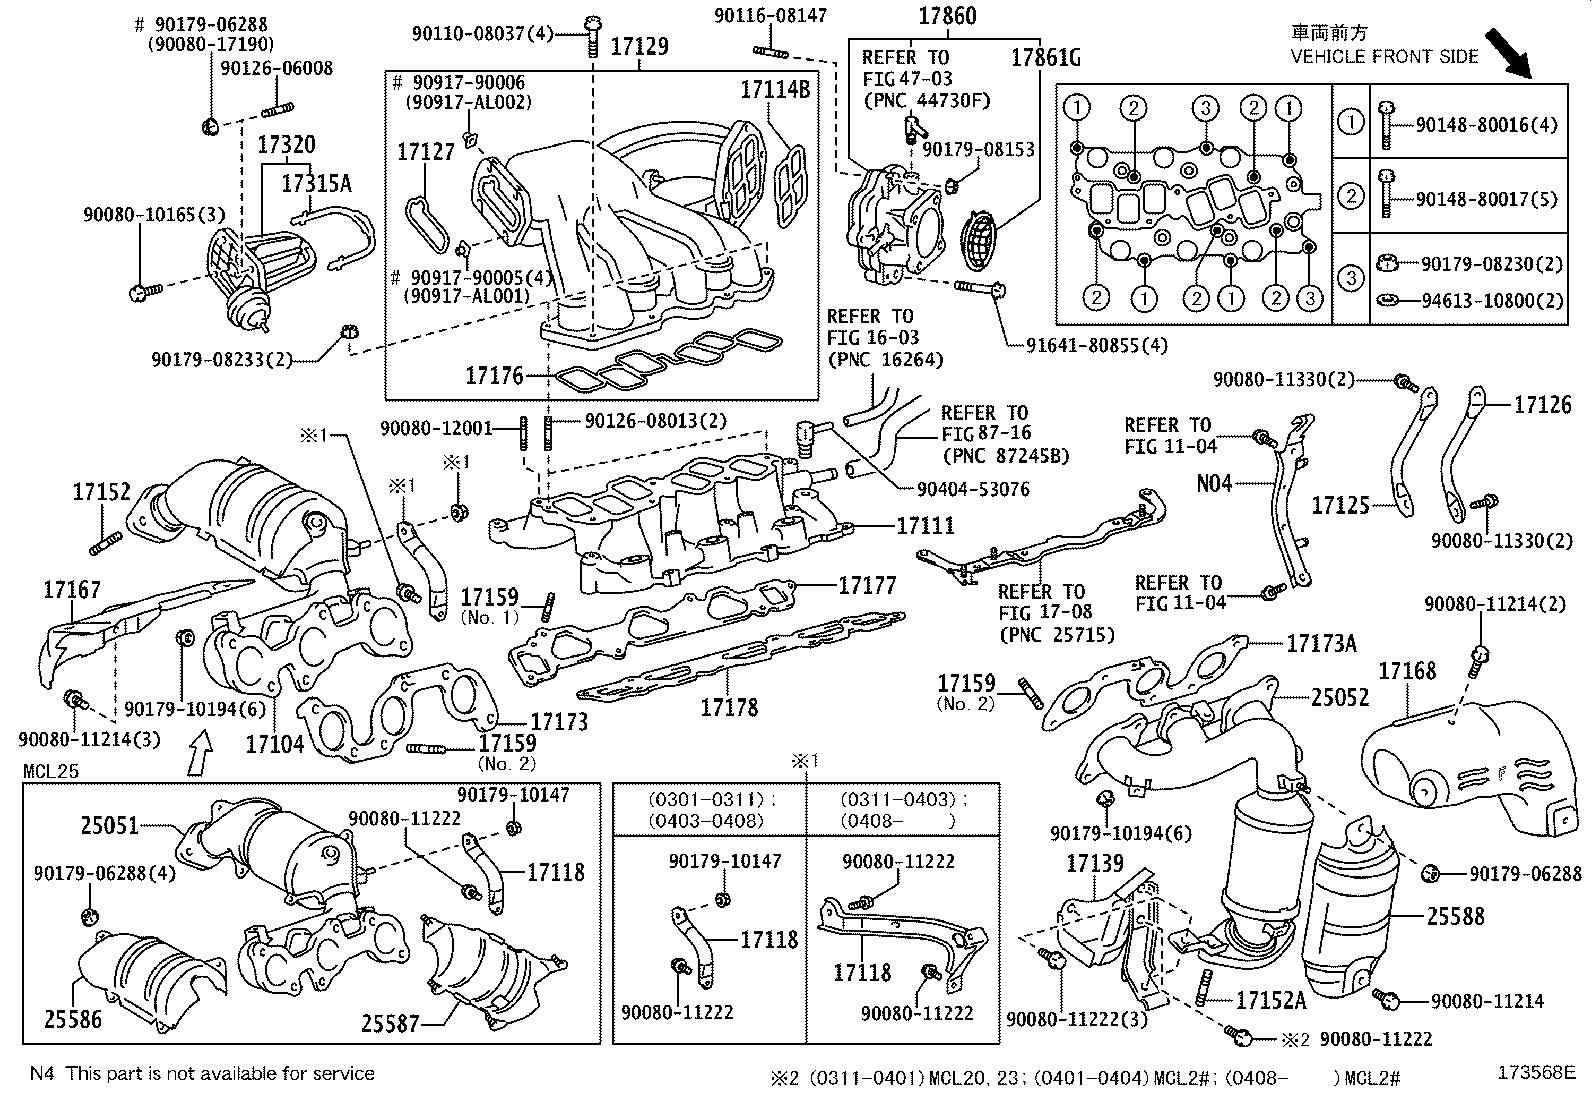 Toyota Sienna Connector Assembly Intake Air Exhaust